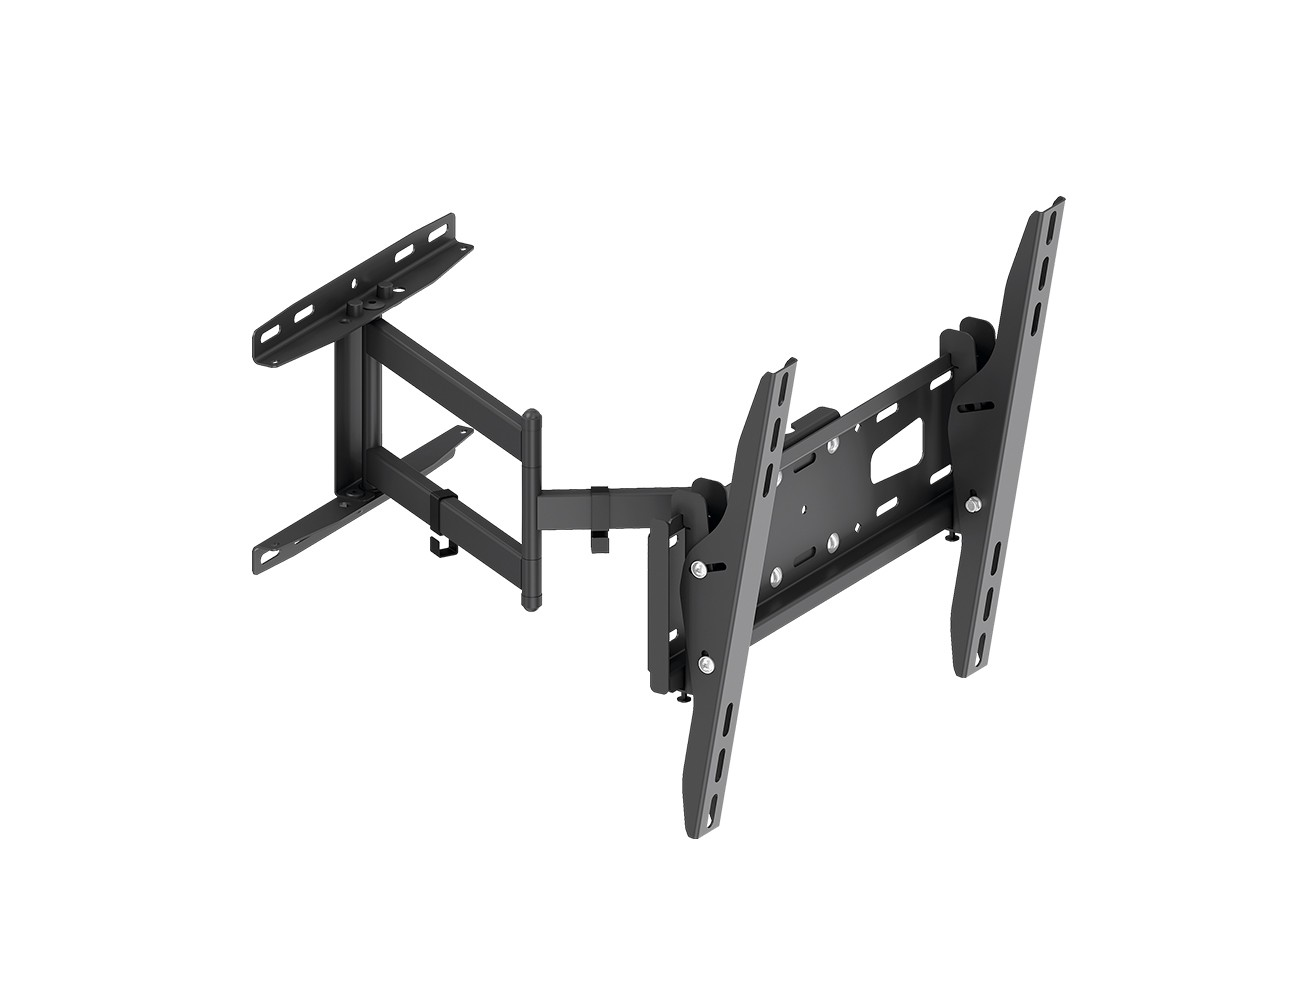 Full-Motion Wall Mount WMO-6245T